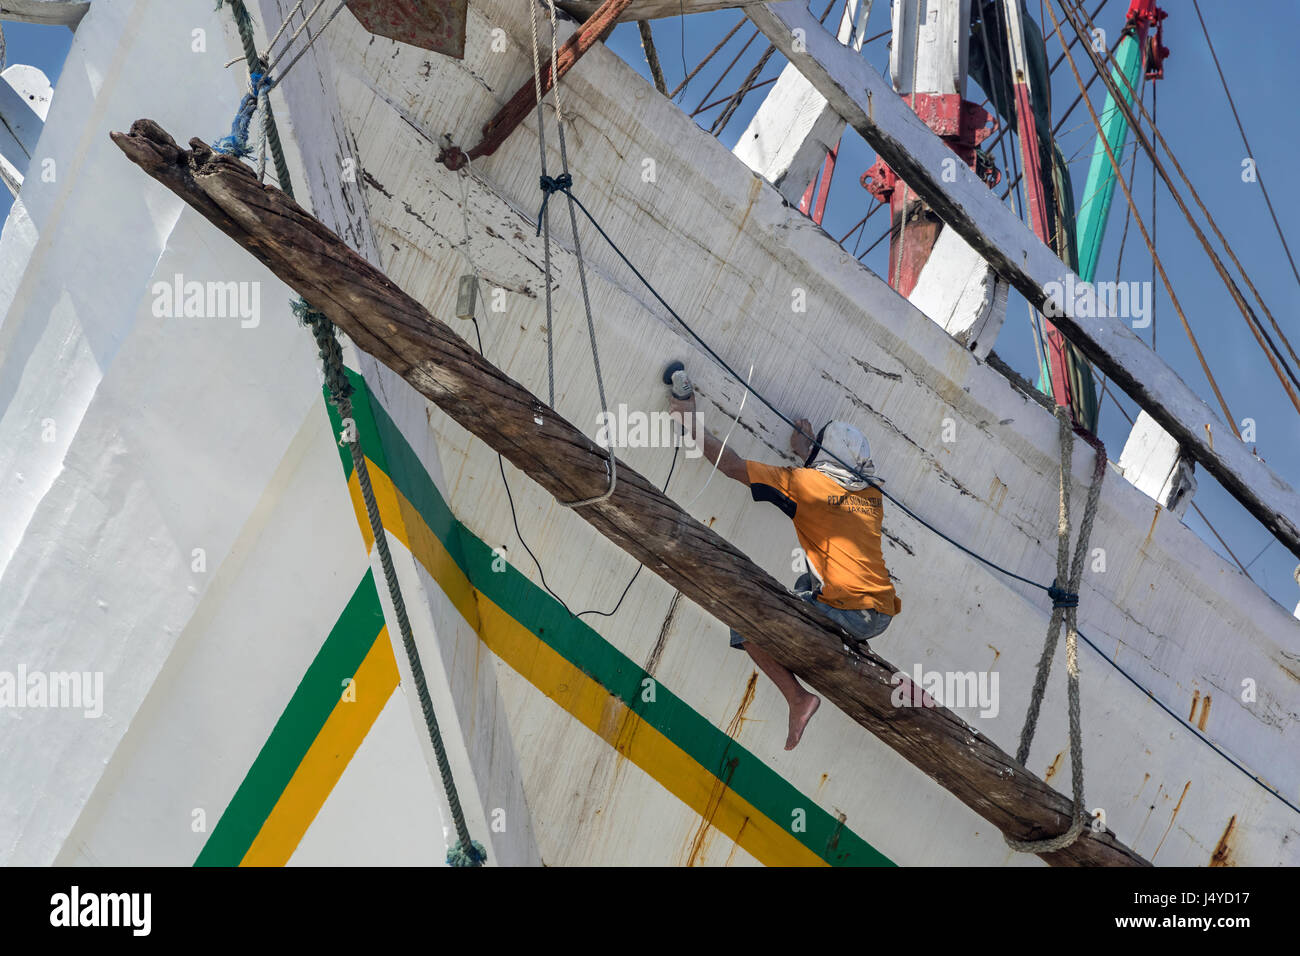 Endless job of sanding and painting a wooden pinisi, Sunda Kelapa Harbour, Jakarta, Indonesia - Stock Image